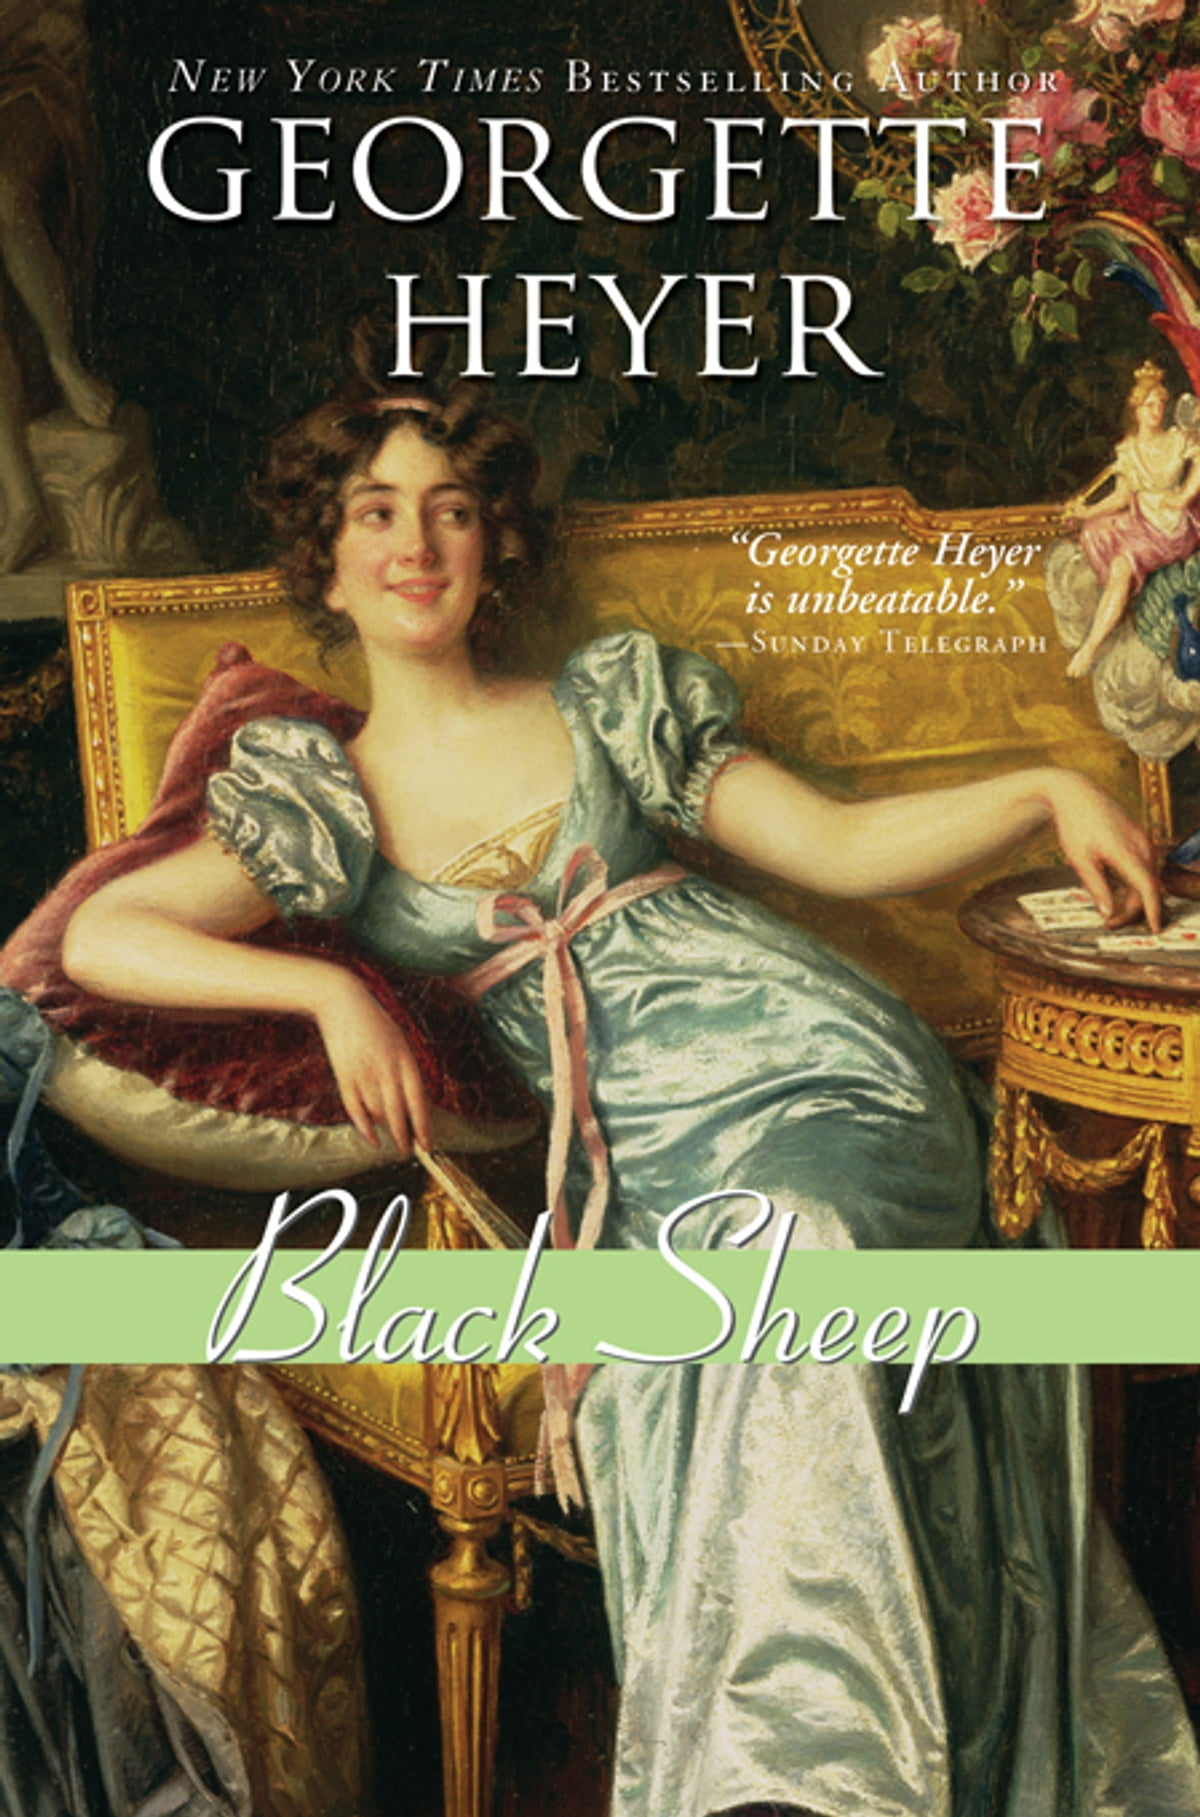 These Old Shades By Georgette Heyer Pdf